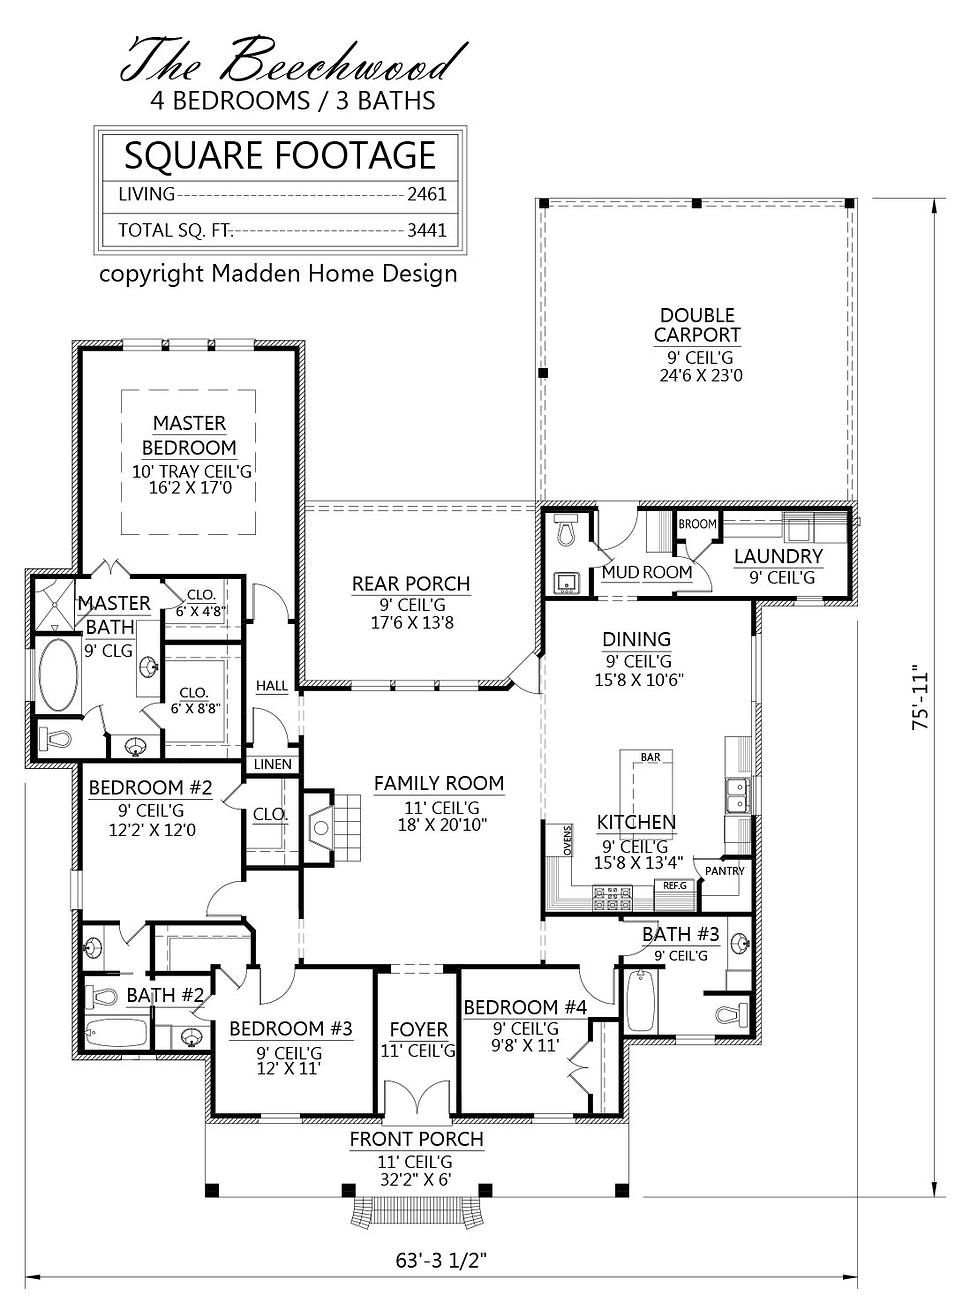 Madden home design the greywood house plans for French acadian house plans louisiana